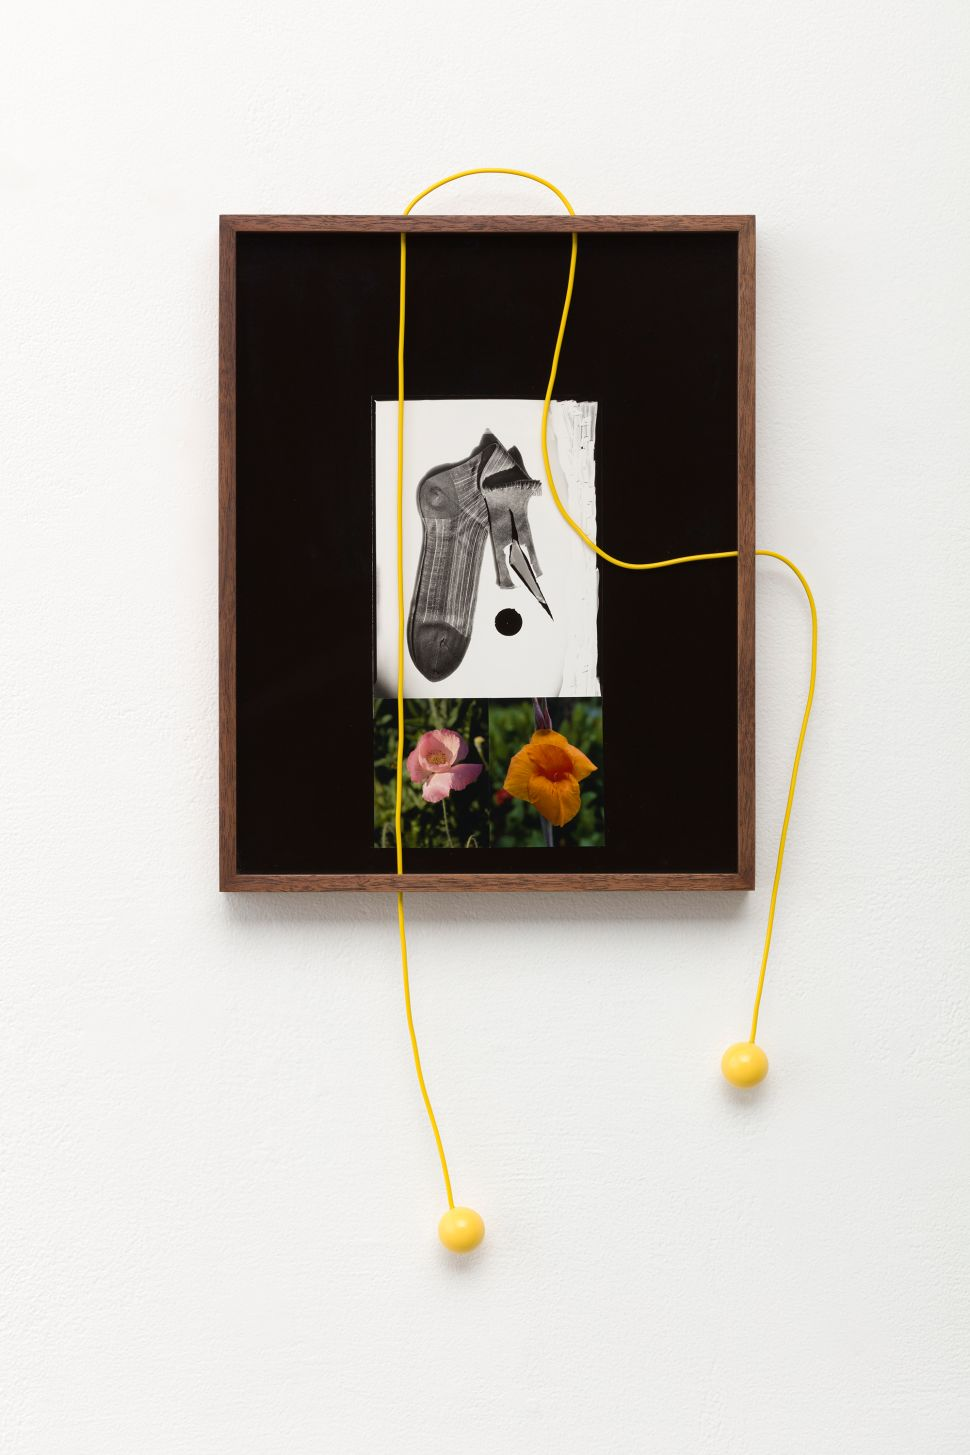 Artist Elad Lassry Will Make You Question the Definition of a Photograph